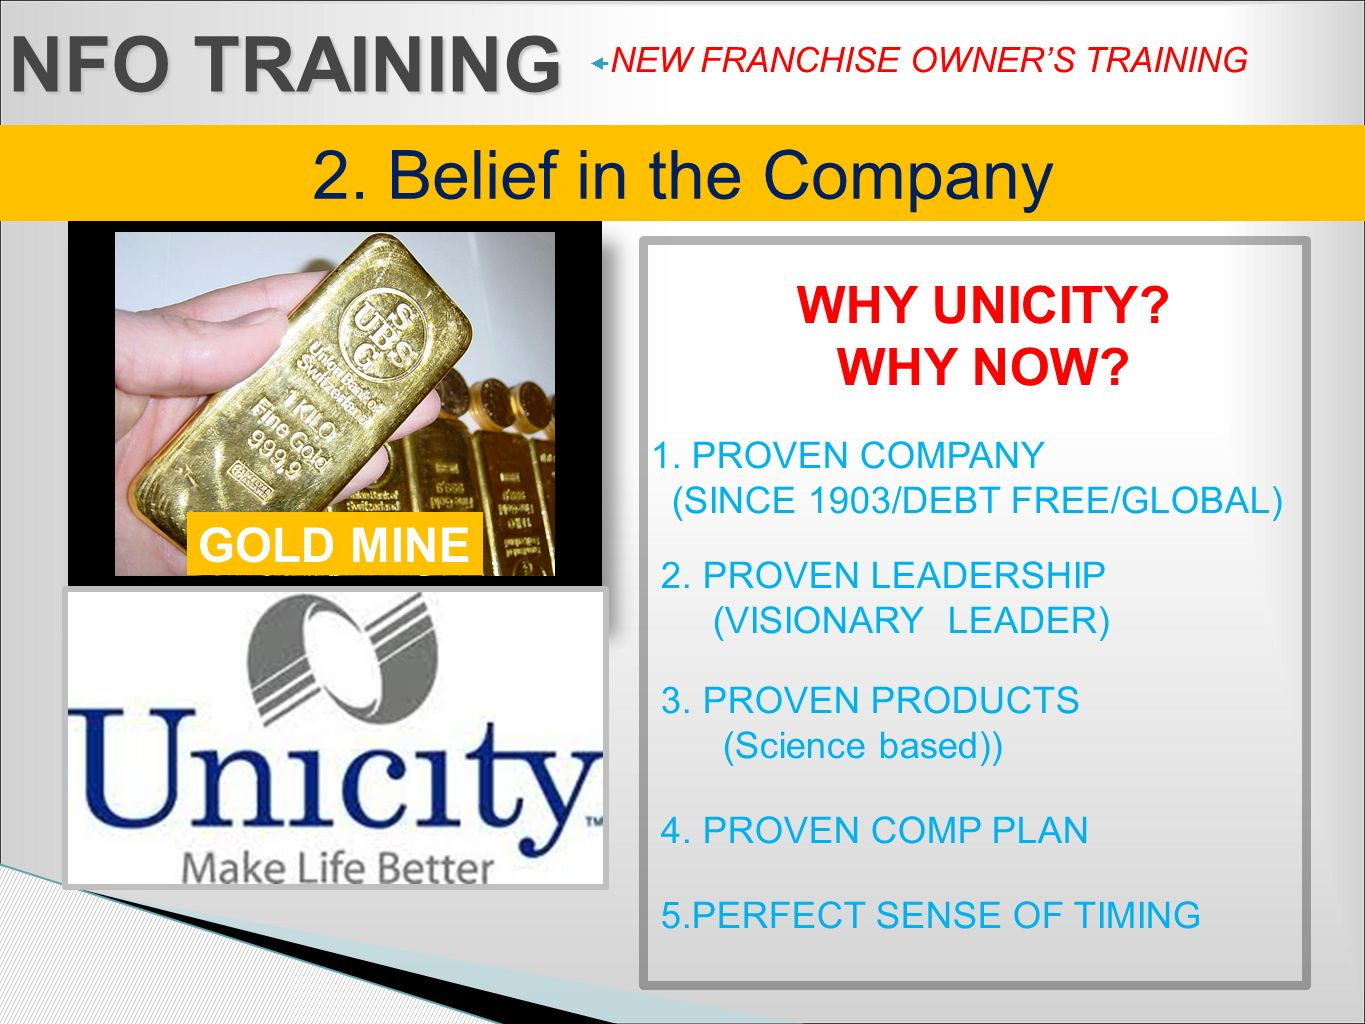 NFO TRAINING 2. Belief in the Company GOLD MINE WHY UNICITY WHY NOW